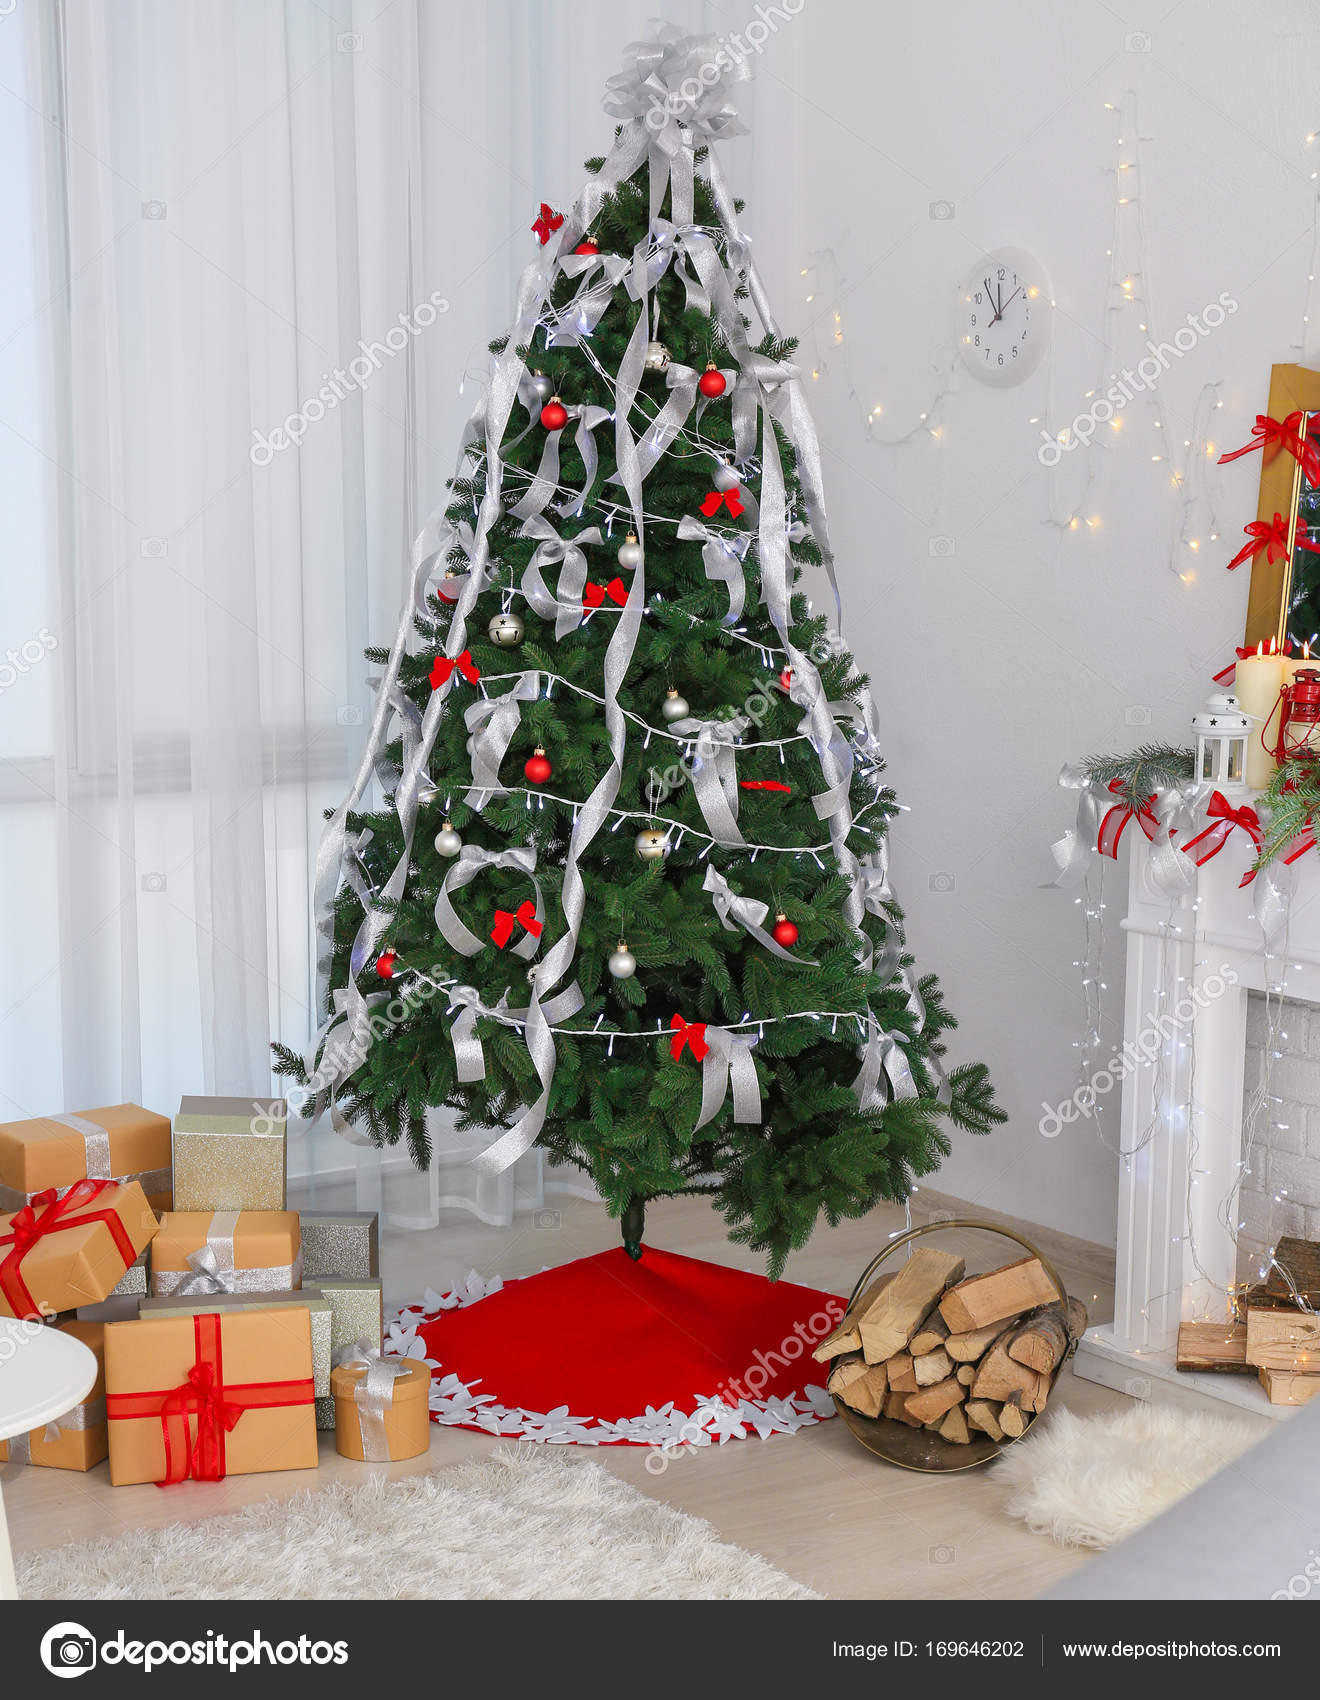 At Home Christmas Trees.Beautiful Christmas Tree With Skirt And Gifts At Home